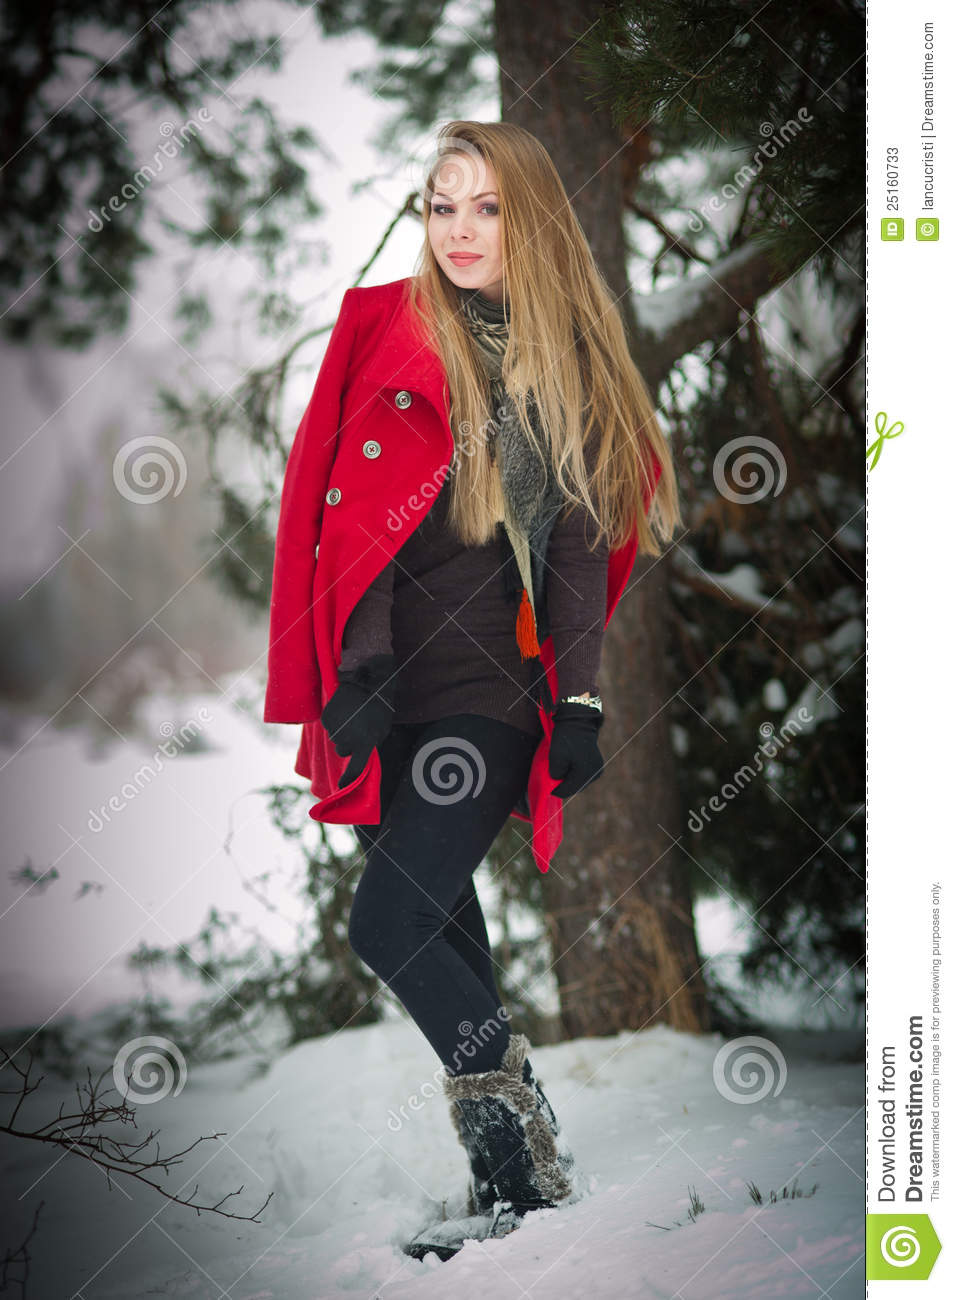 65471596b Blonde Girl With Red Coat In Winter Snow Stock Image - Image of girl ...